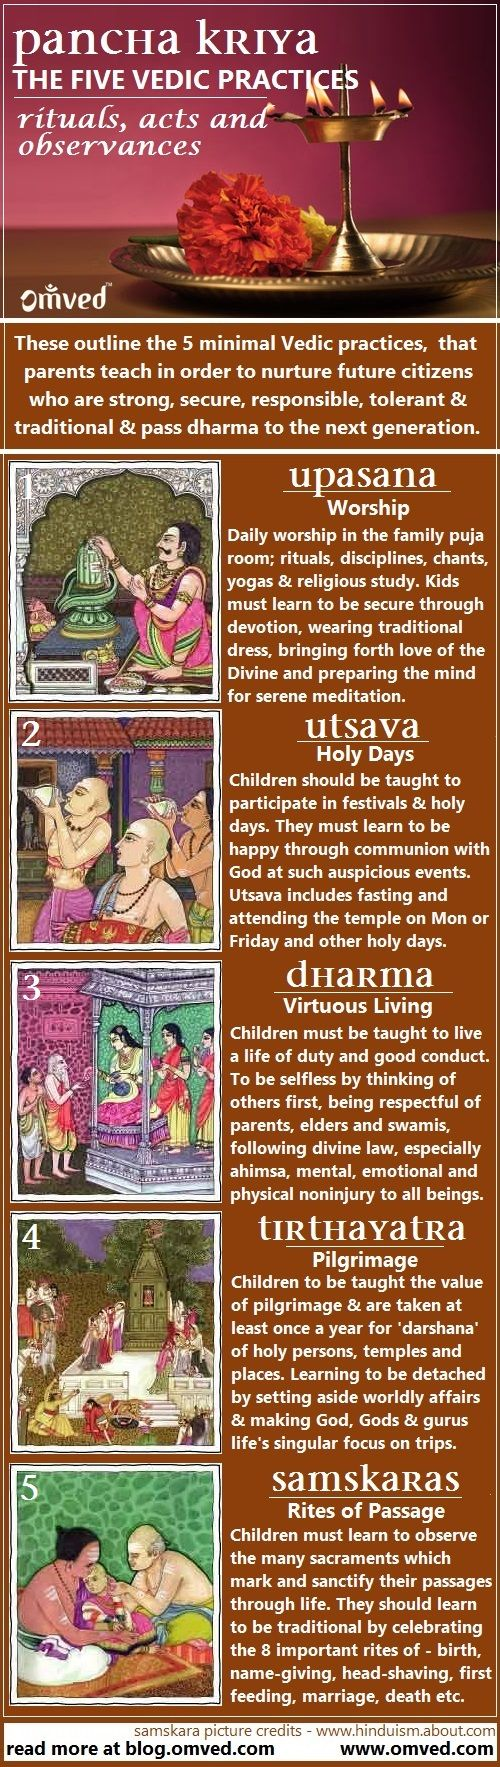 The Five Practices or 'Pancha Kriya' outline the minimal Vedic practices, also known as Pancha Nitya Karmas that parents teach their children in order to nurture future citizens who are strong, secure, responsible, tolerant and traditional and pass the dharma to the next generation.